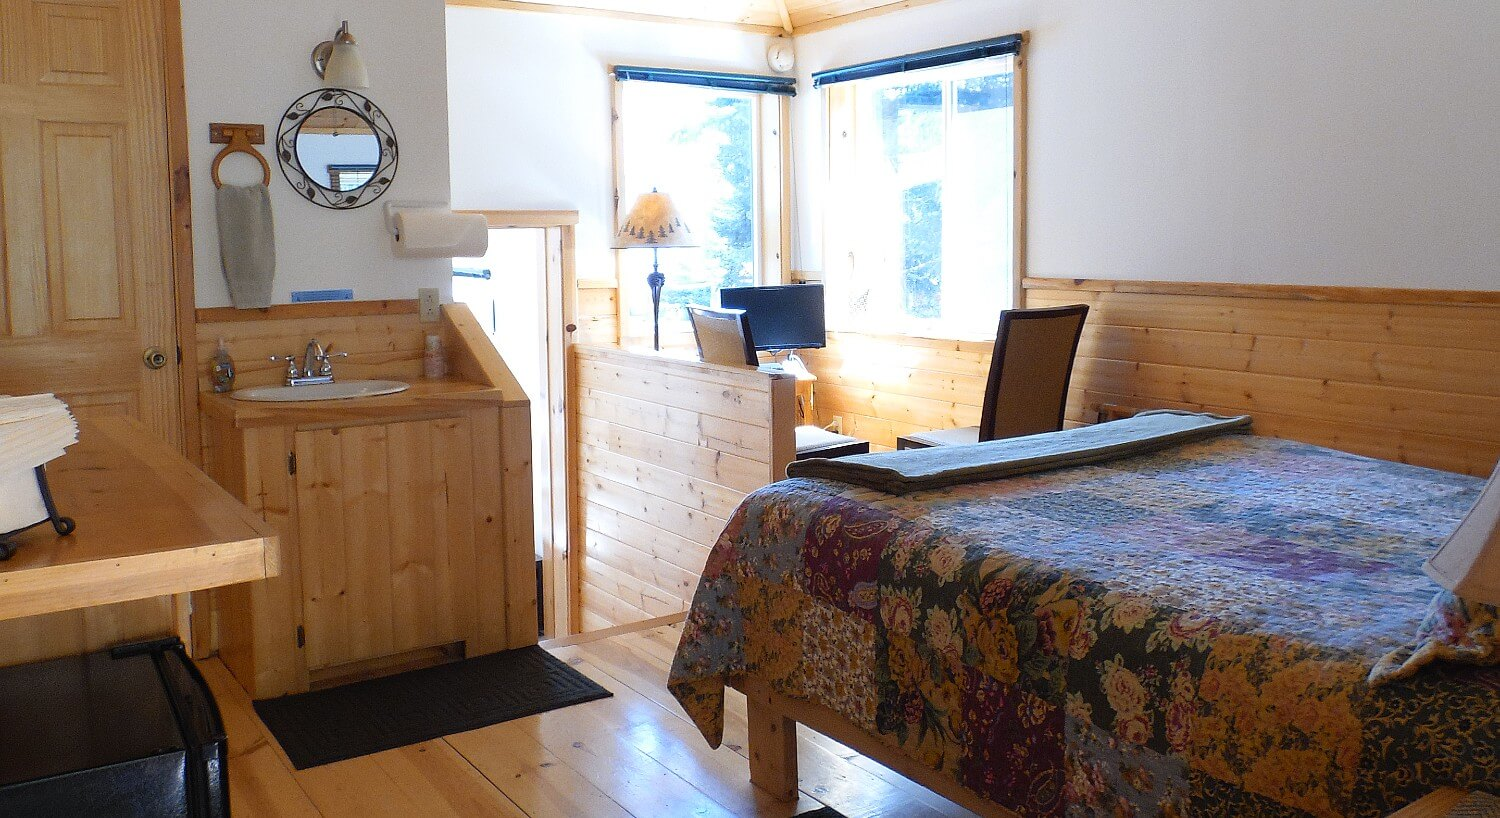 Cabin guest room with wood floors, queen bed, small vanity with sink and two chairs in a nook with tv and windows